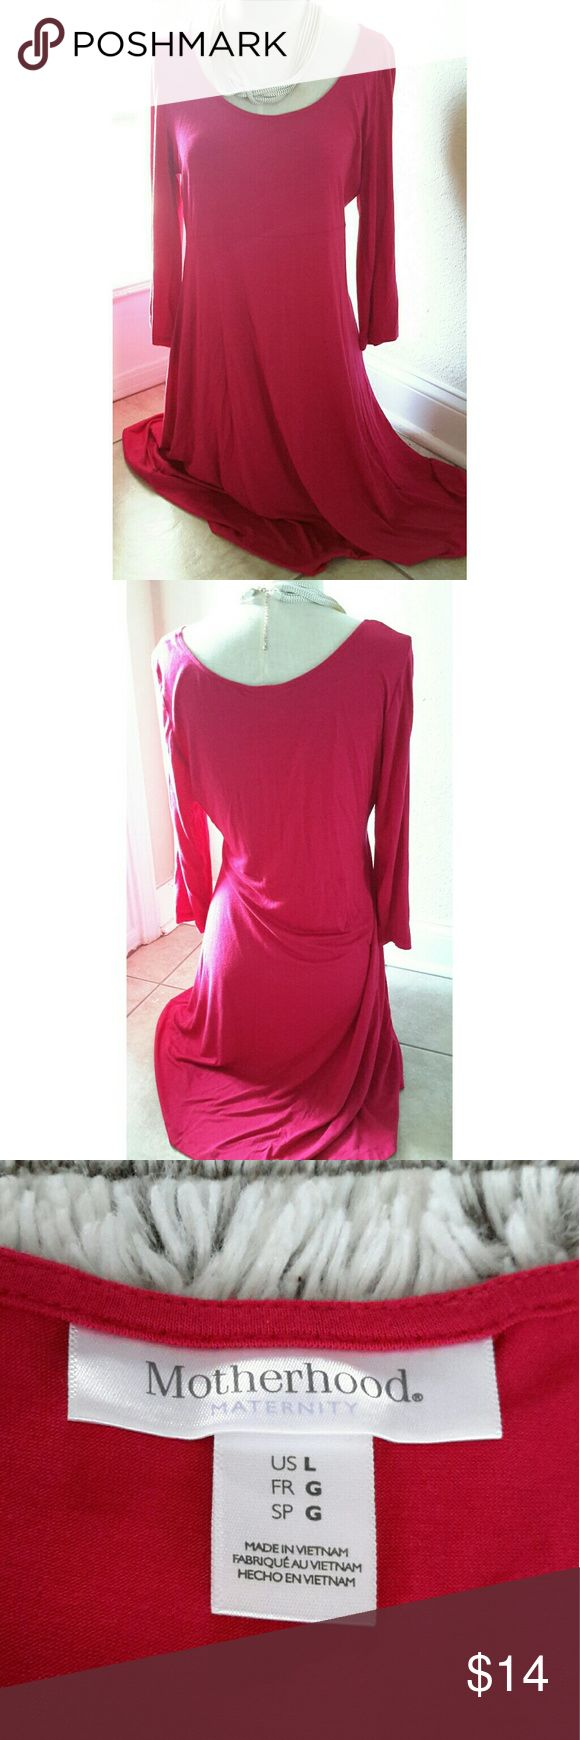 """Motherhood Maternity Pink Dress Gorgeous pink maternity dress! 18"""" sleeve. 38"""" length. 32"""" bust. 34"""" waist. May fit below knee but depends on height. Size large. First two pictures depict best color of dress. Questions are welcomed. Motherhood Maternity Dresses Midi"""